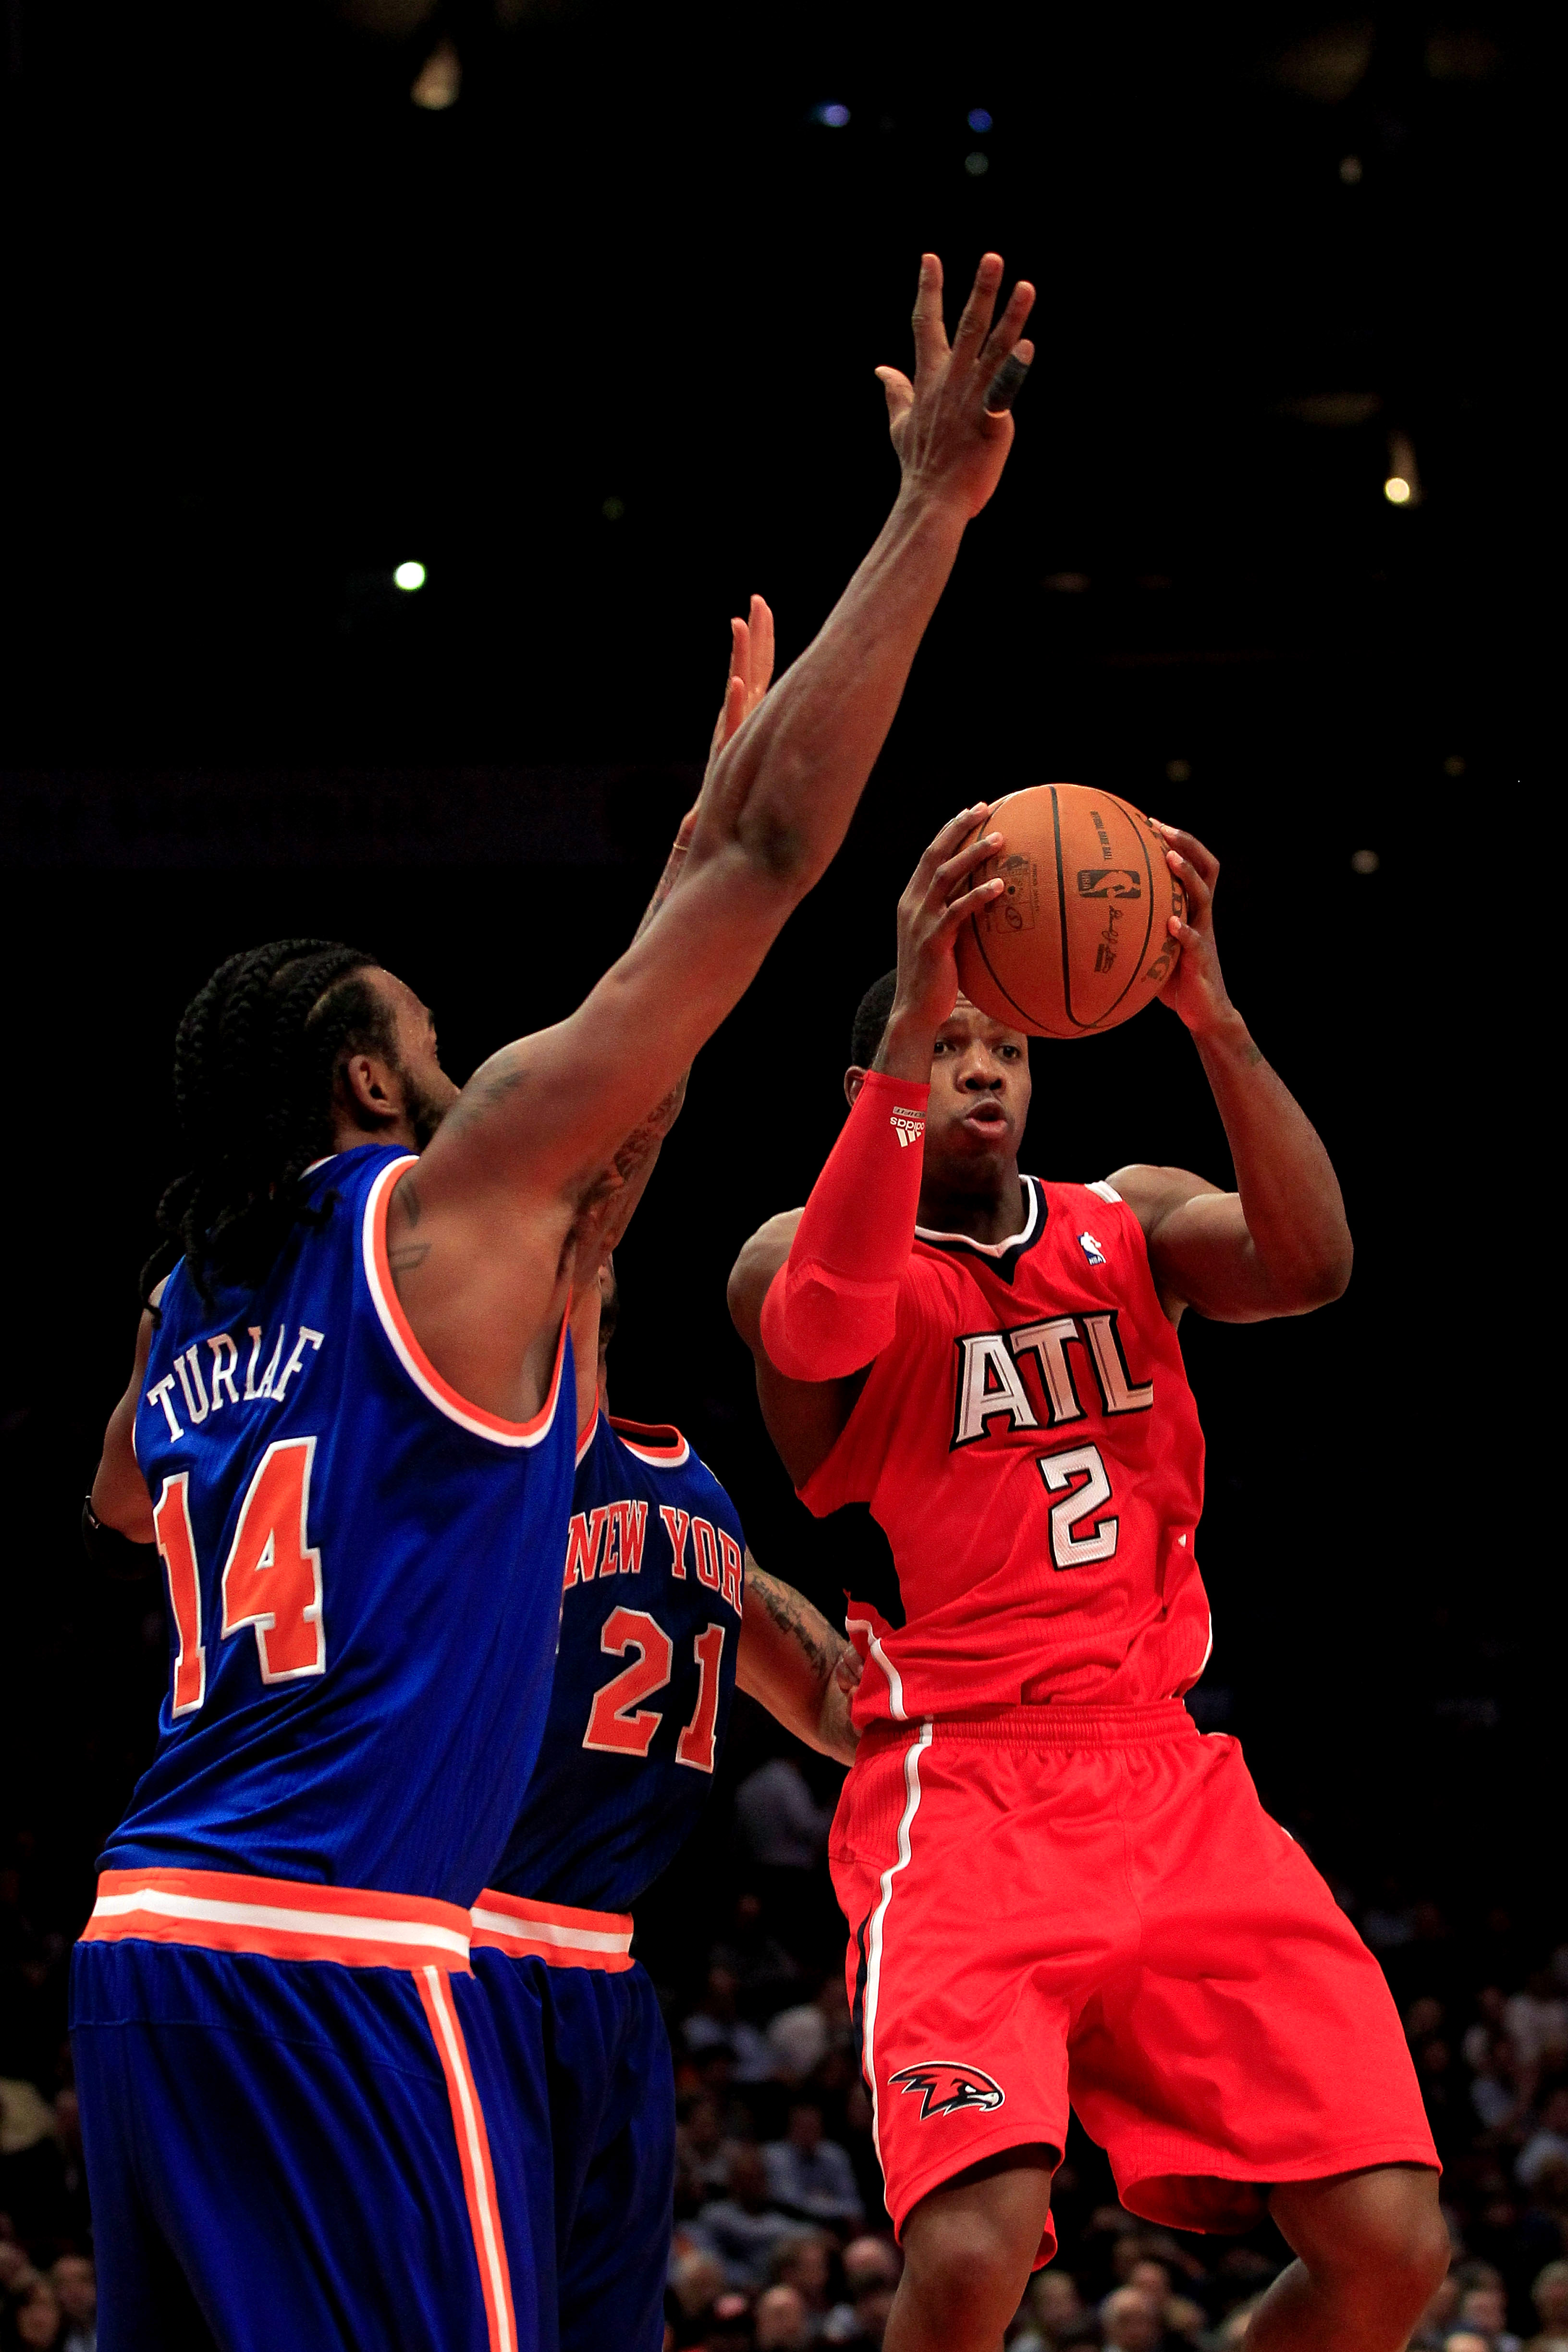 NEW YORK, NY - FEBRUARY 16:  Joe Johnson #2 of the Atlanta Hawks shoots against the New York Knicks at Madison Square Garden on February 16, 2011 in New York City. NOTE TO USER: User expressly acknowledges and agrees that, by downloading and/or using this